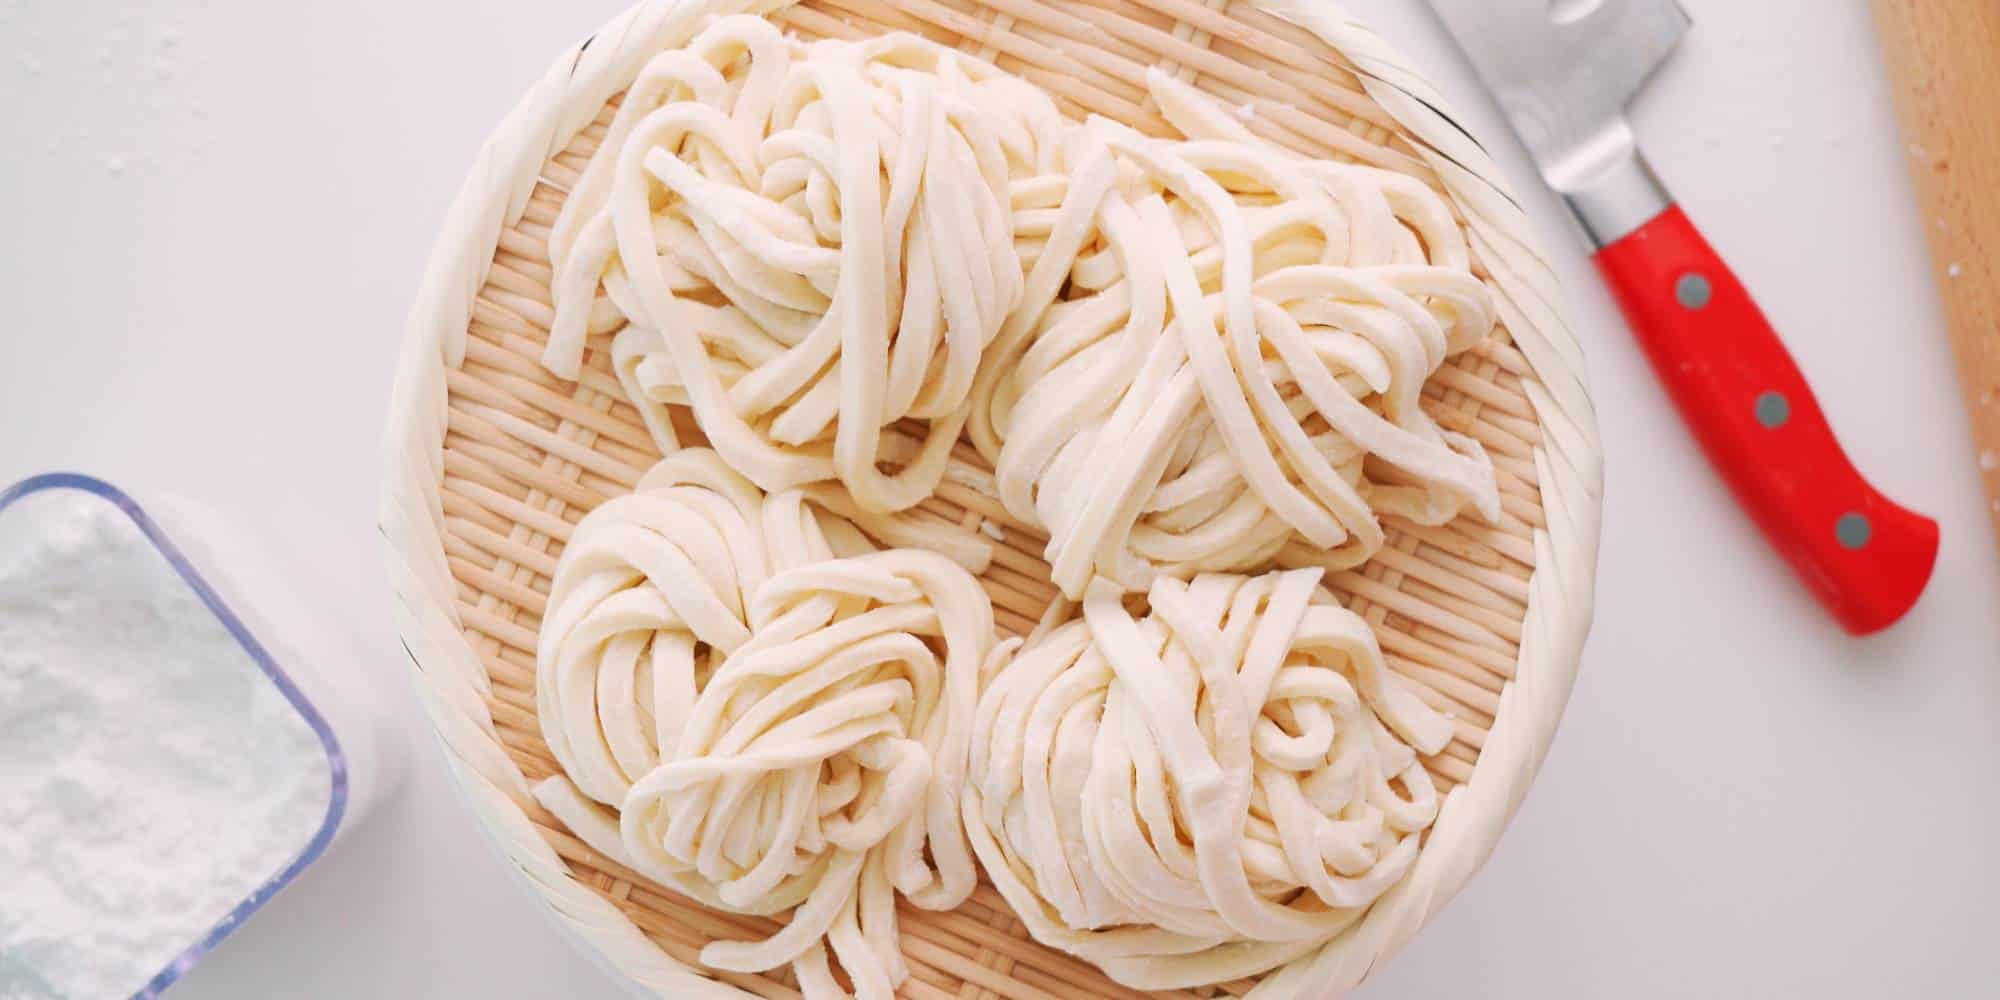 Nests of fresh hand-cut udon noodles in a basket.